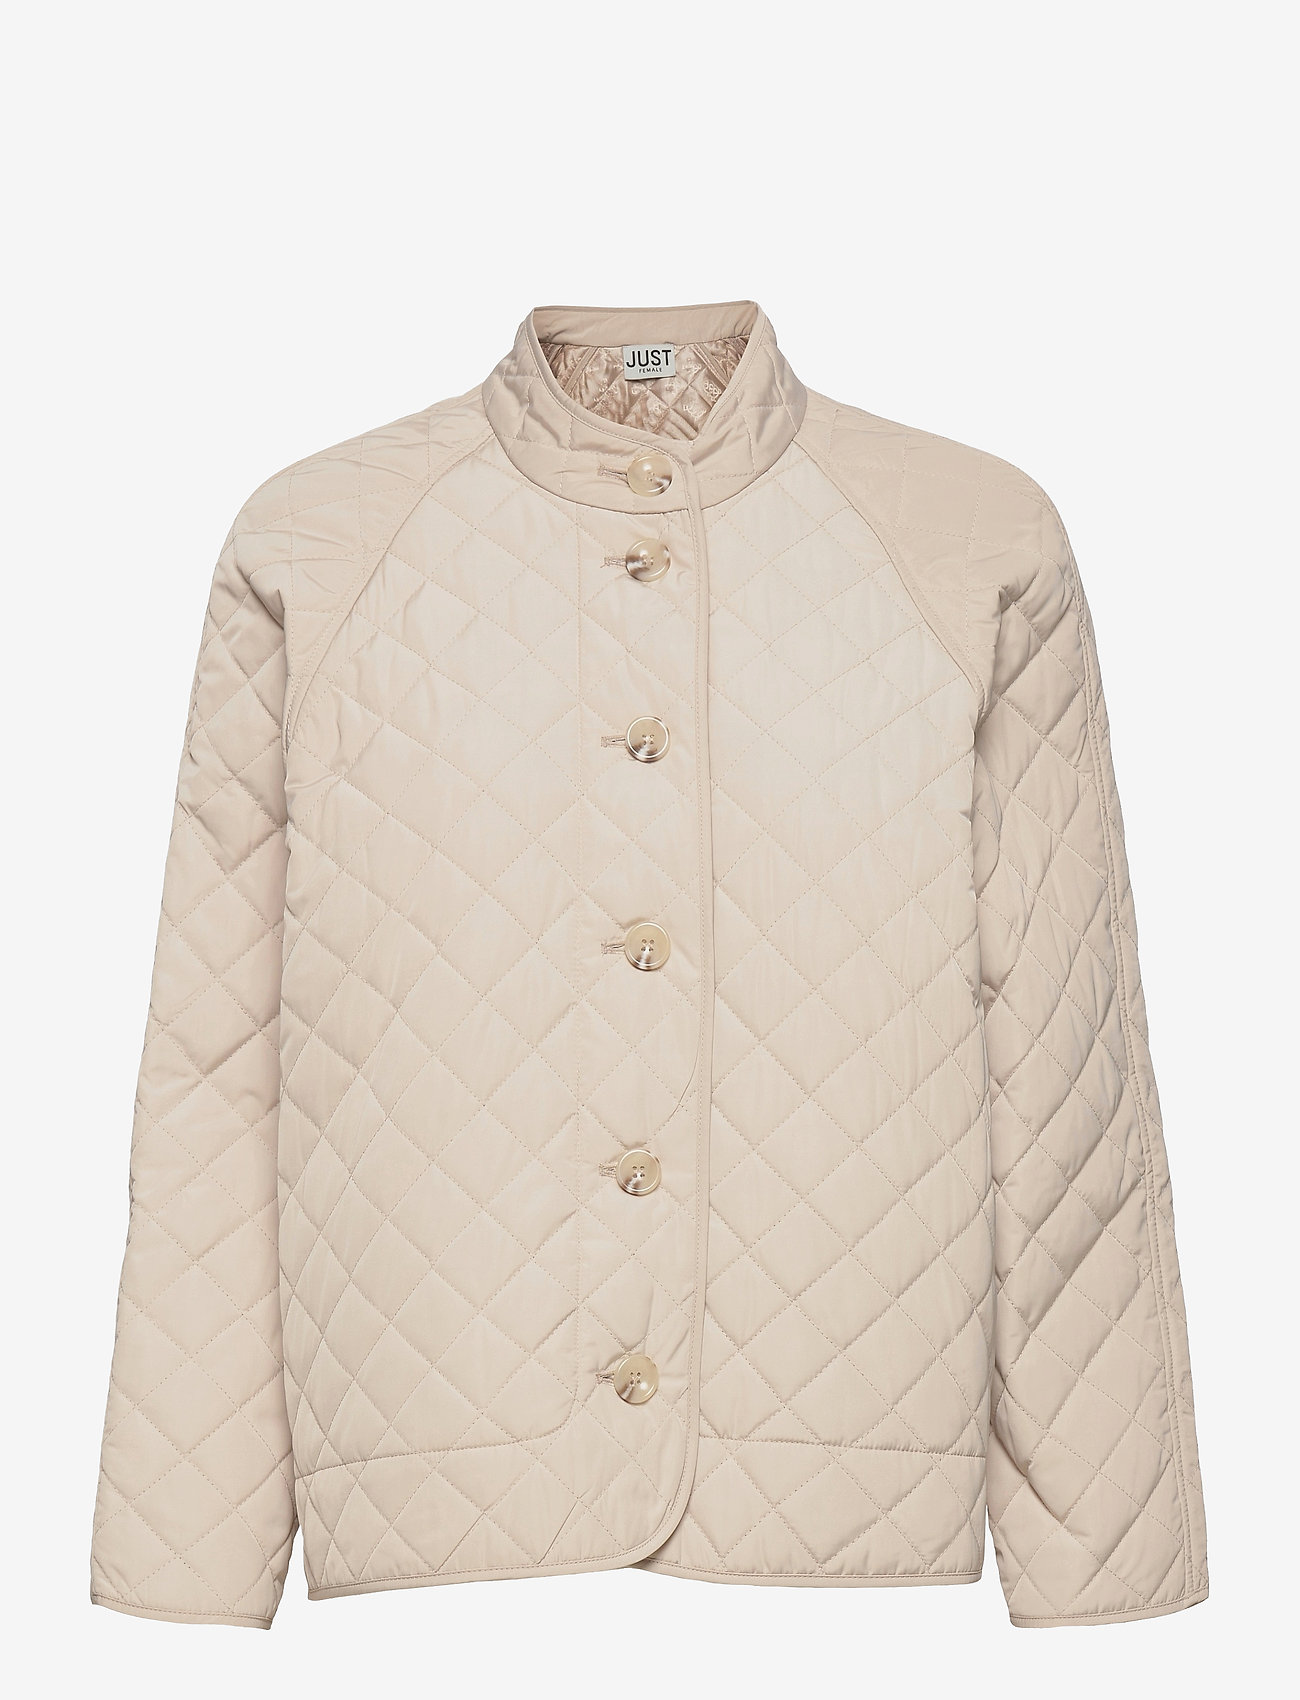 Just Female - Hisar jacket - quilted jackets - pumice stone - 1